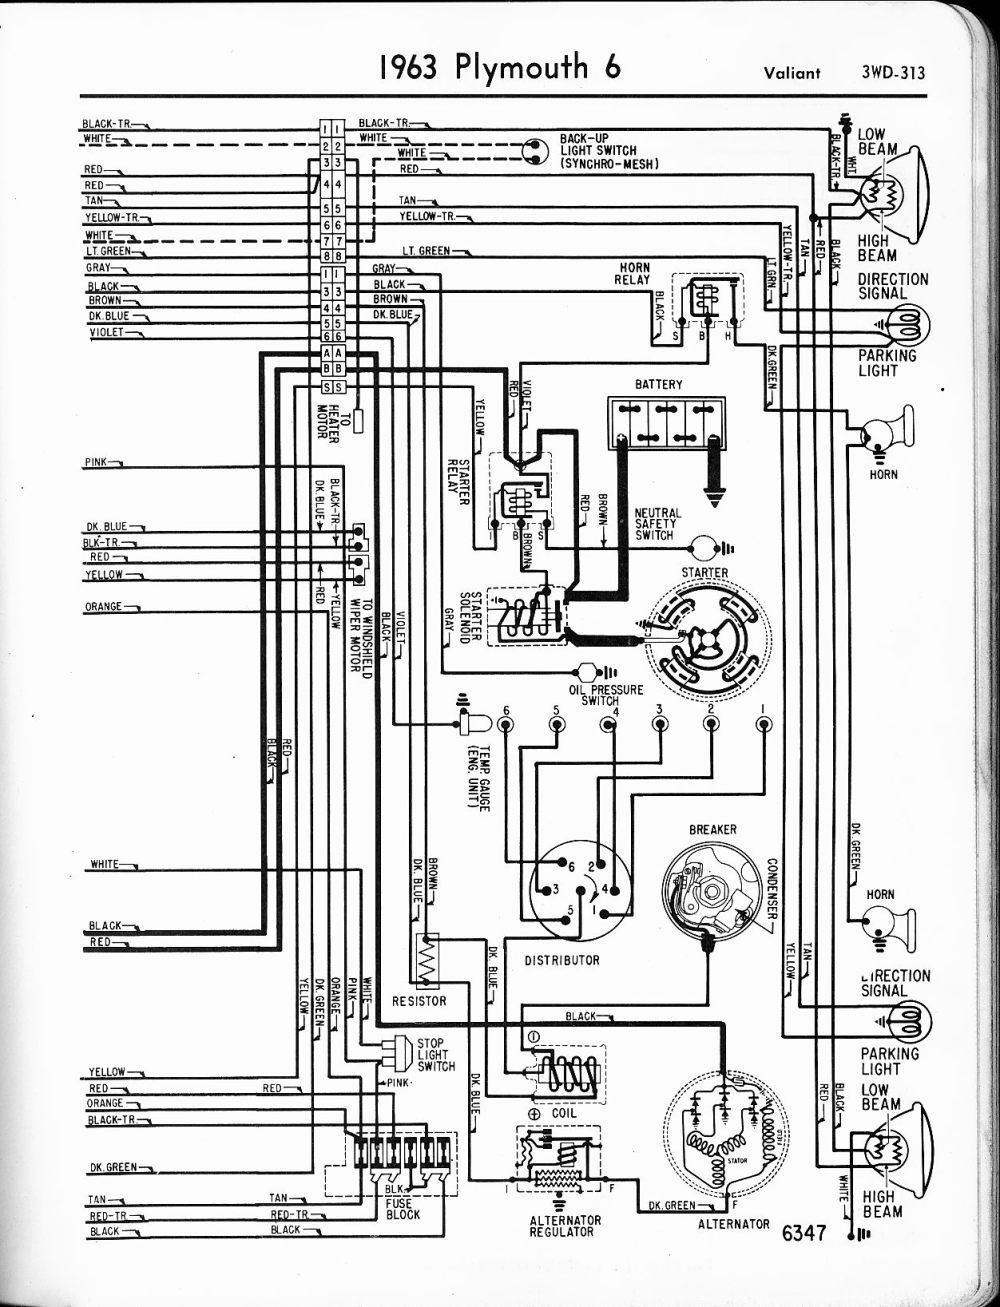 medium resolution of 1963 plymouth wiring diagram wiring diagram1956 1965 plymouth wiring the old car manual project1963 plymouth 6